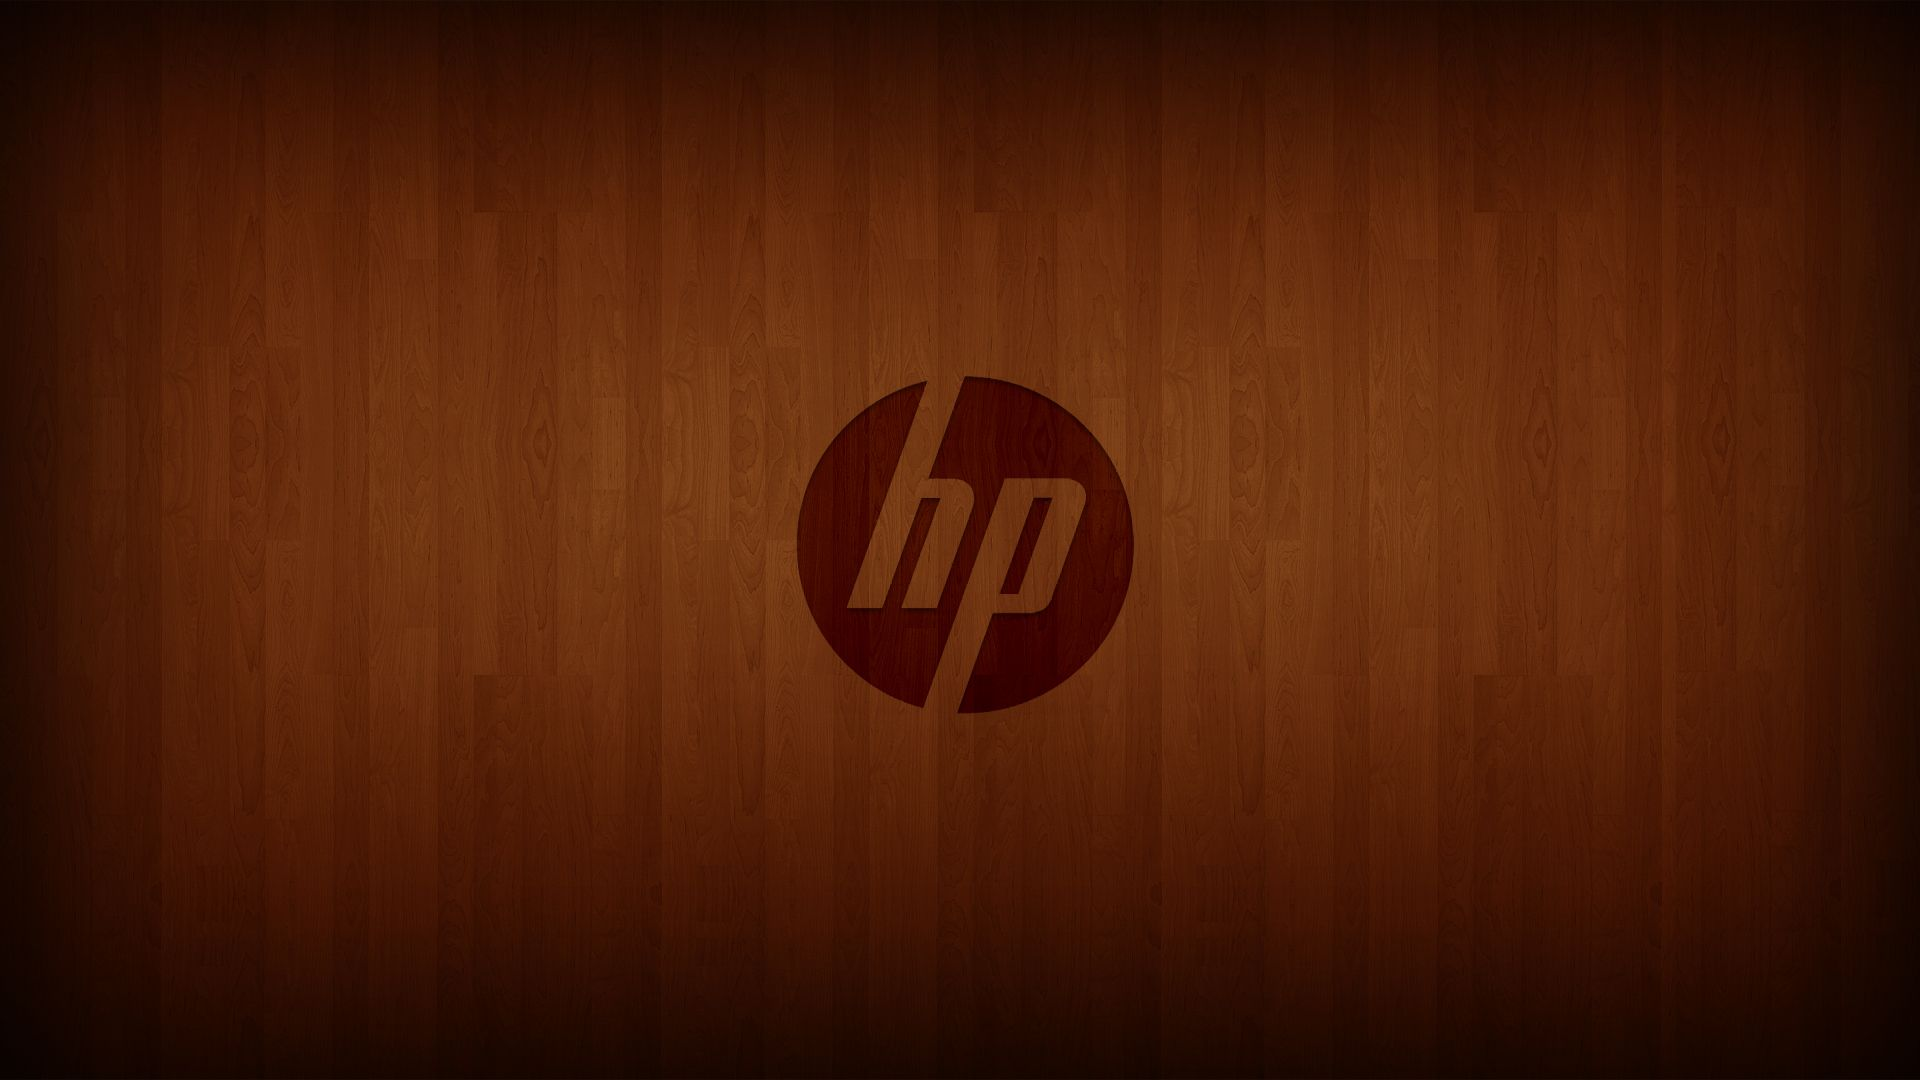 Hp Wallpaper For Laptop Wallpaper Images Hd Cool Wallpapers For Laptop Hd Cool Wallpapers